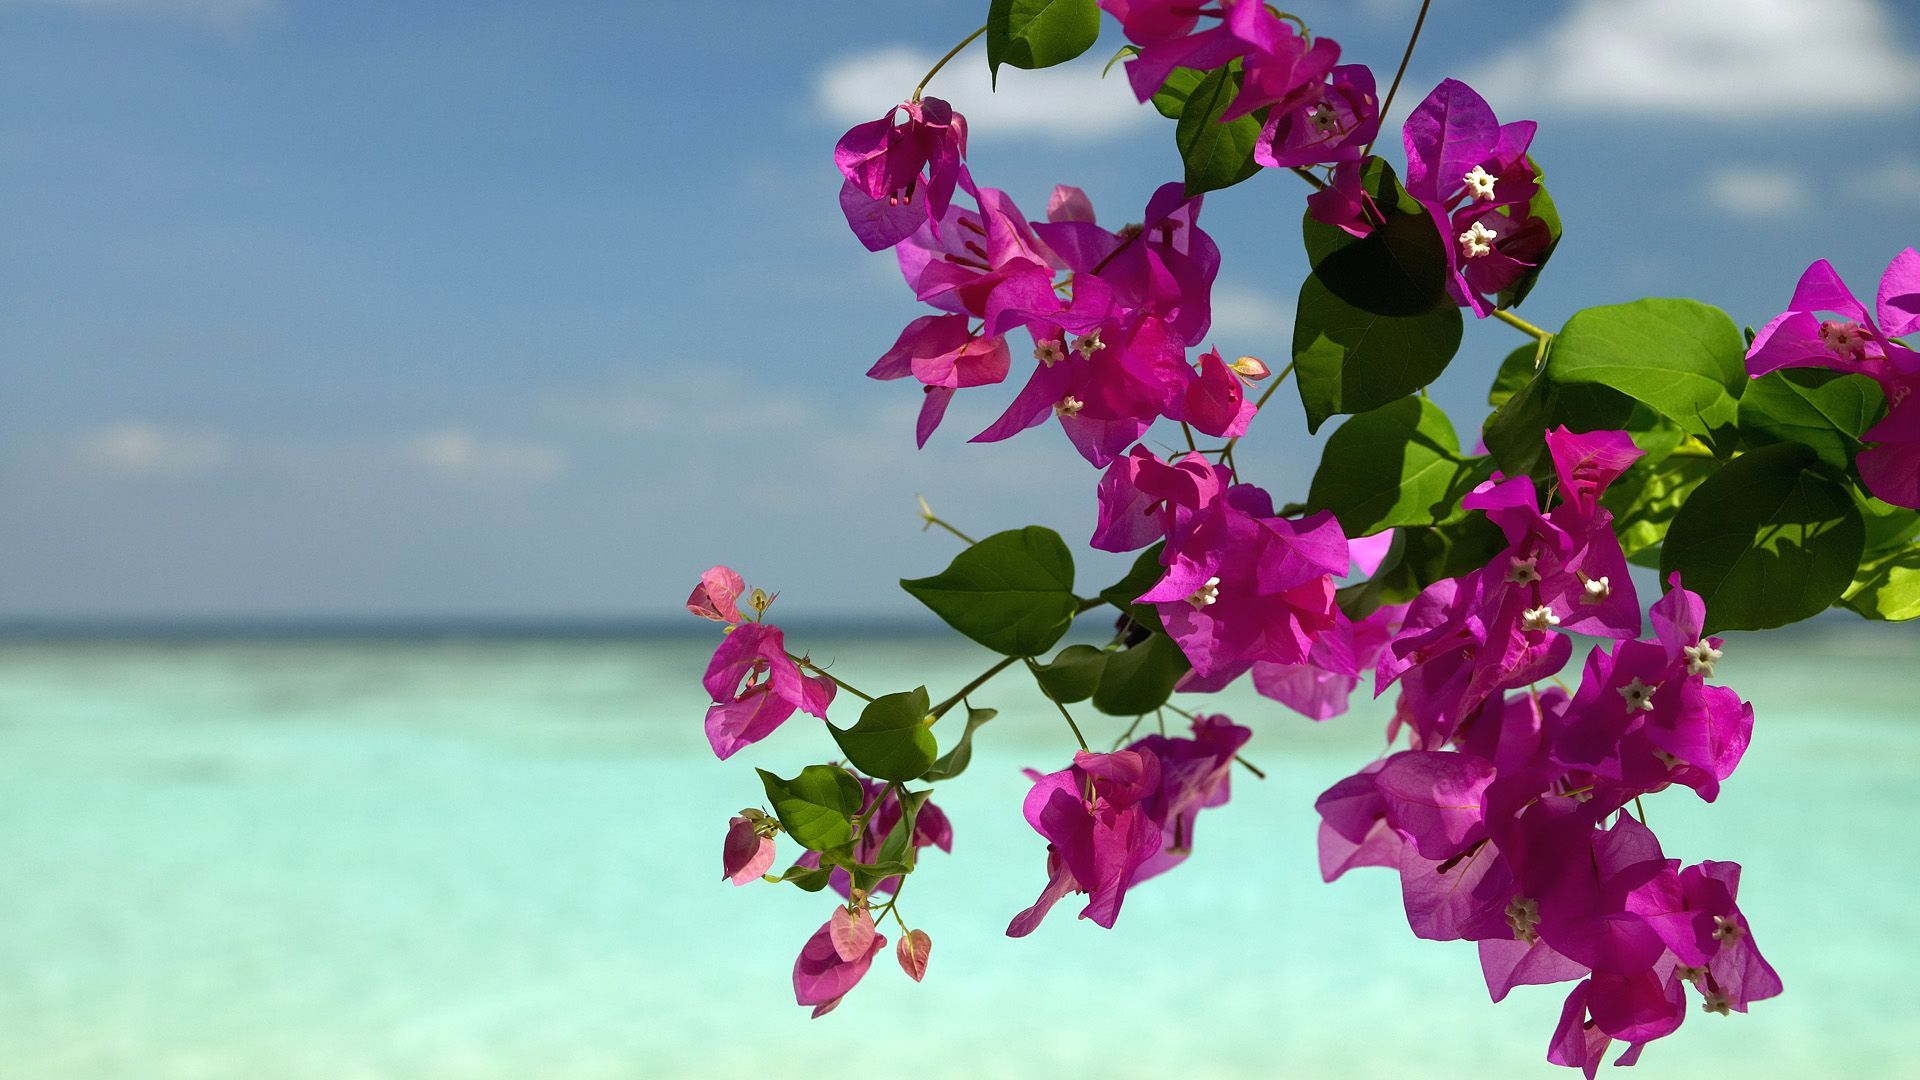 27686 download wallpaper Plants, Landscape, Flowers, Sea screensavers and pictures for free